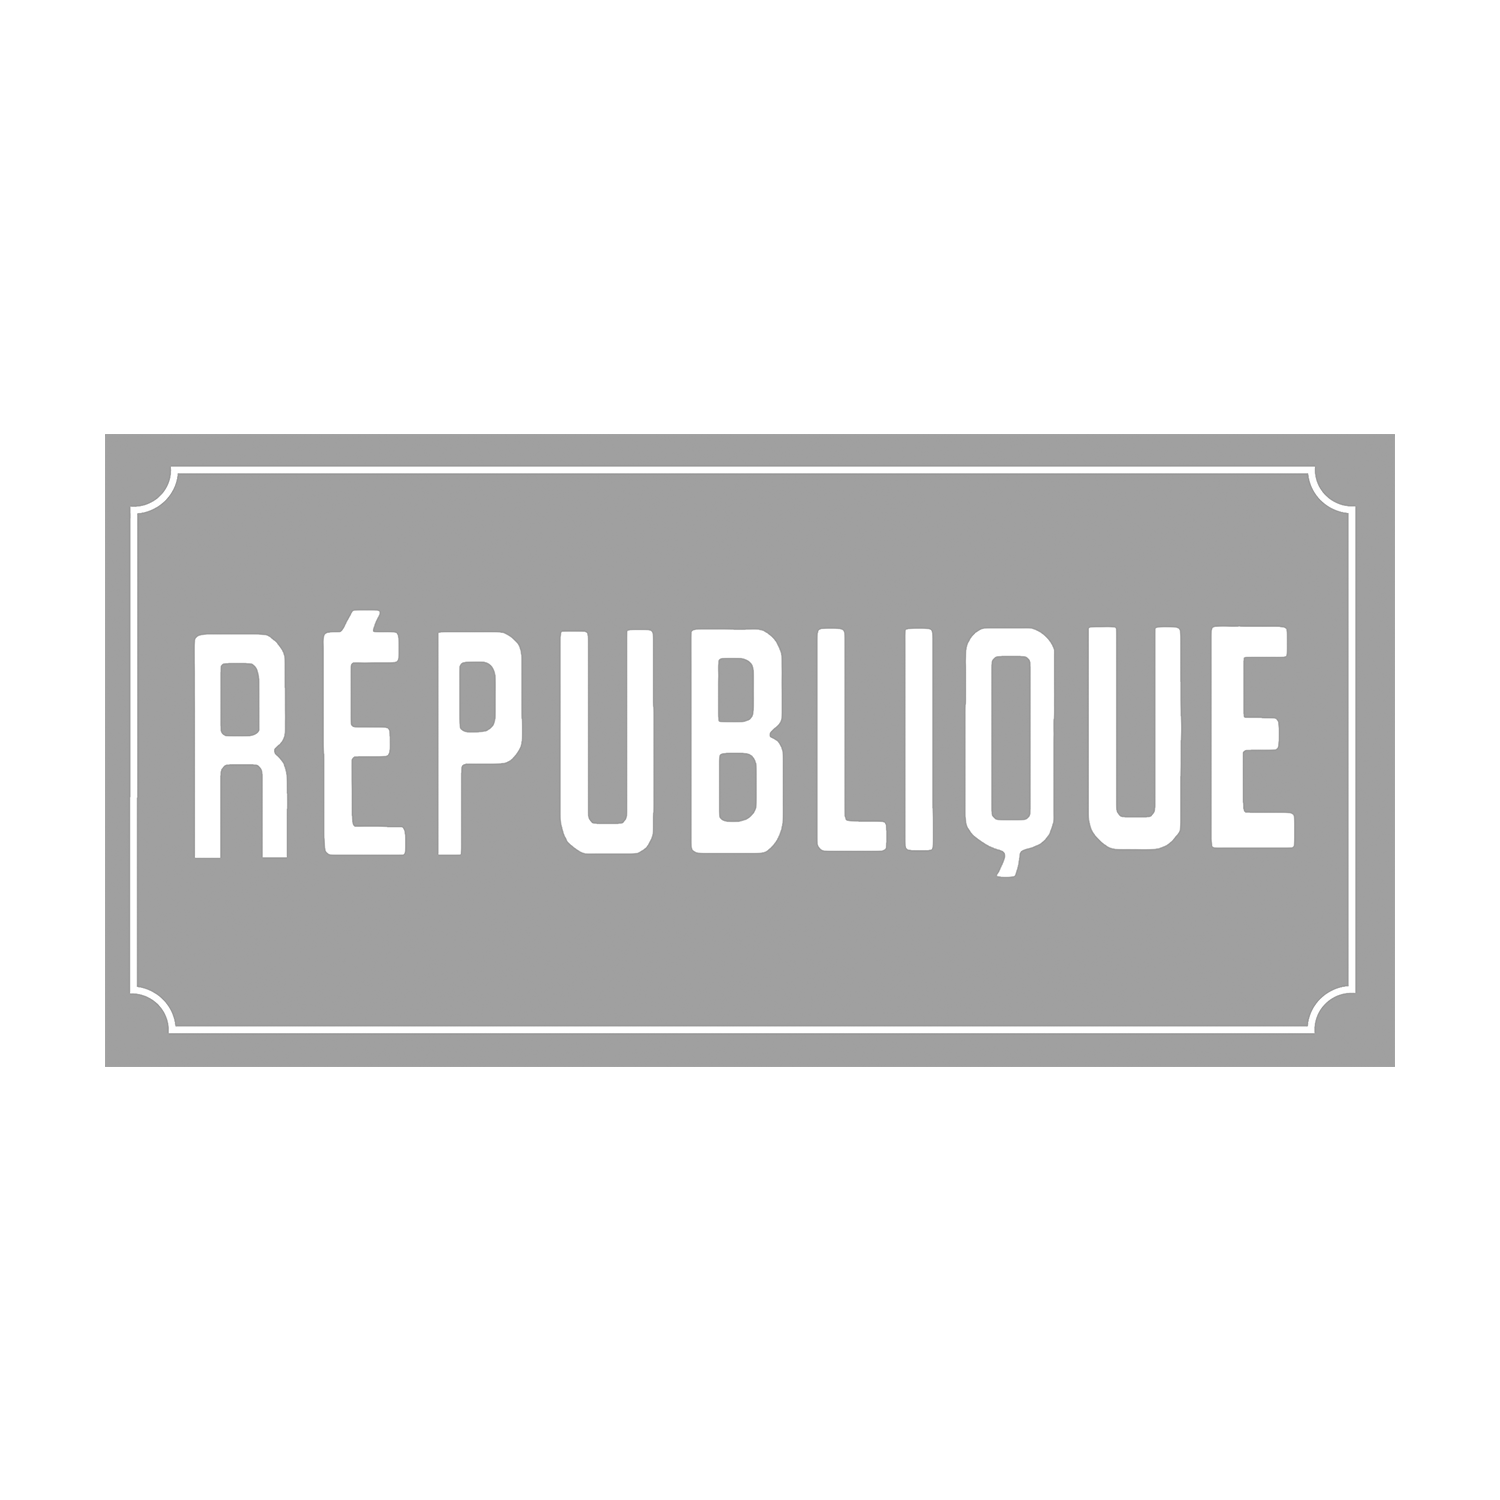 Republique_logo.png